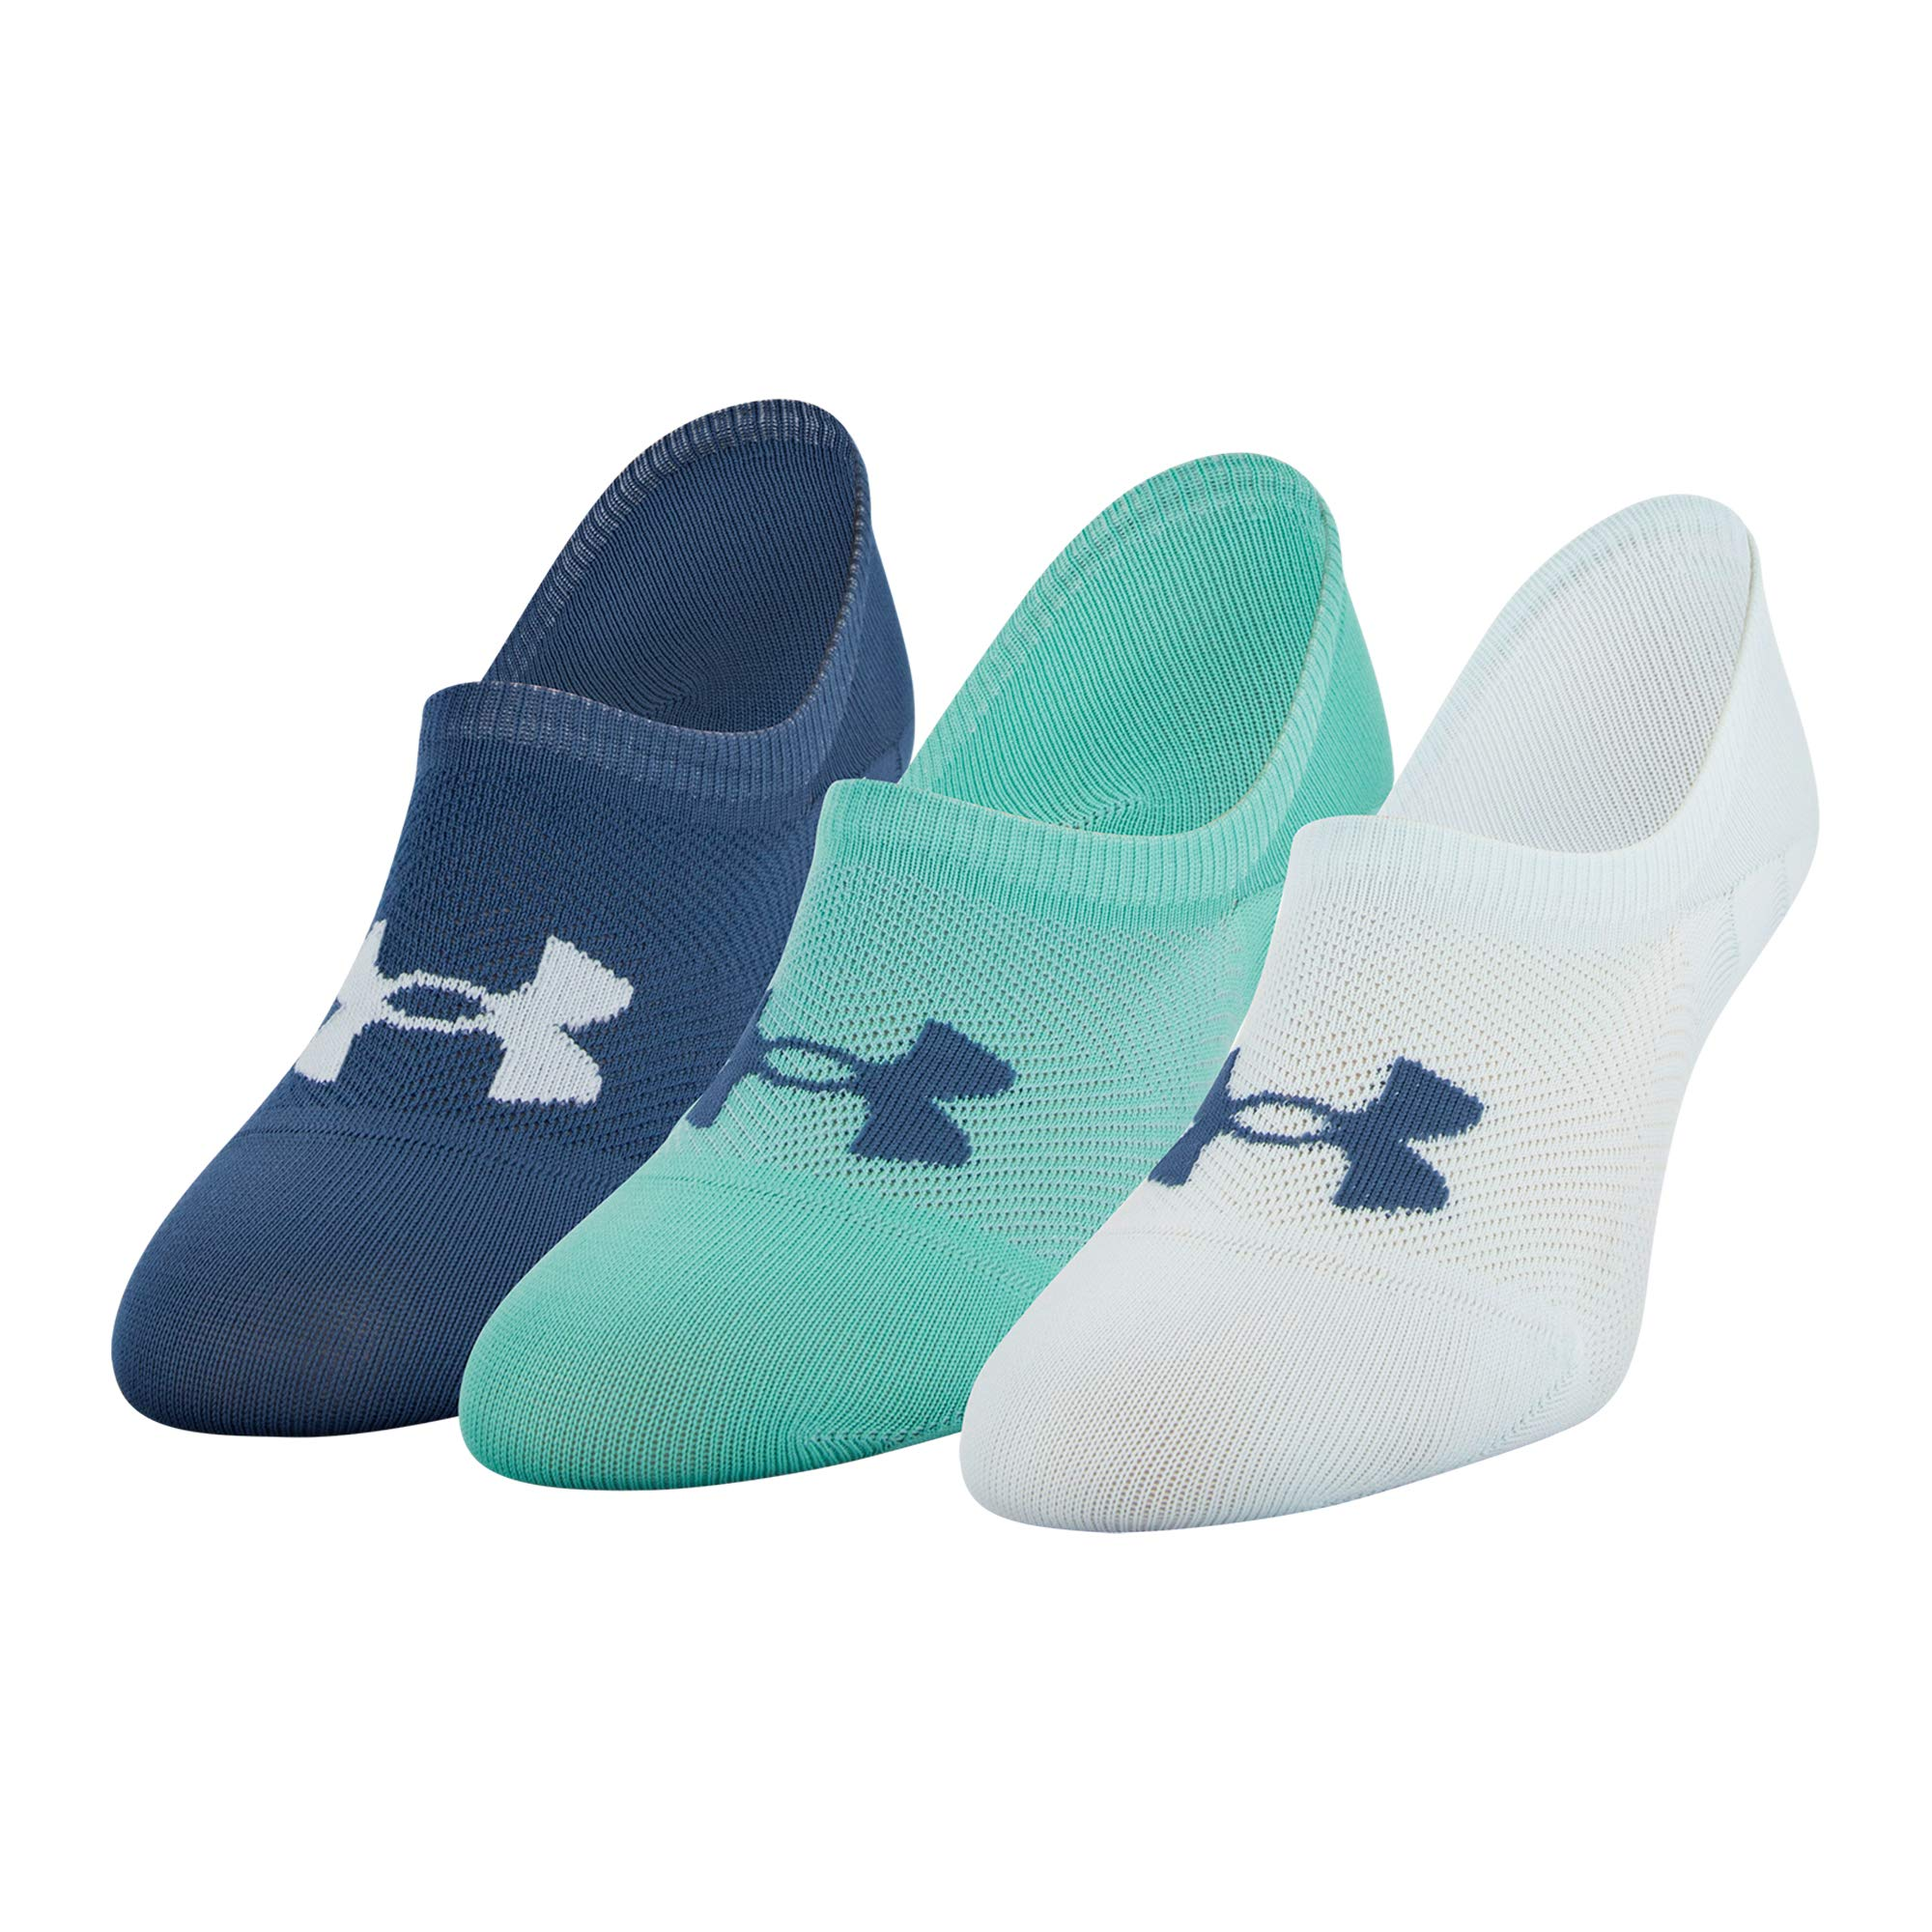 Under Armour Women's Essential Ultra Low Socks, 3-Pair, Fuse Teal Assorted, Shoe Size: 6-9 by Under Armour